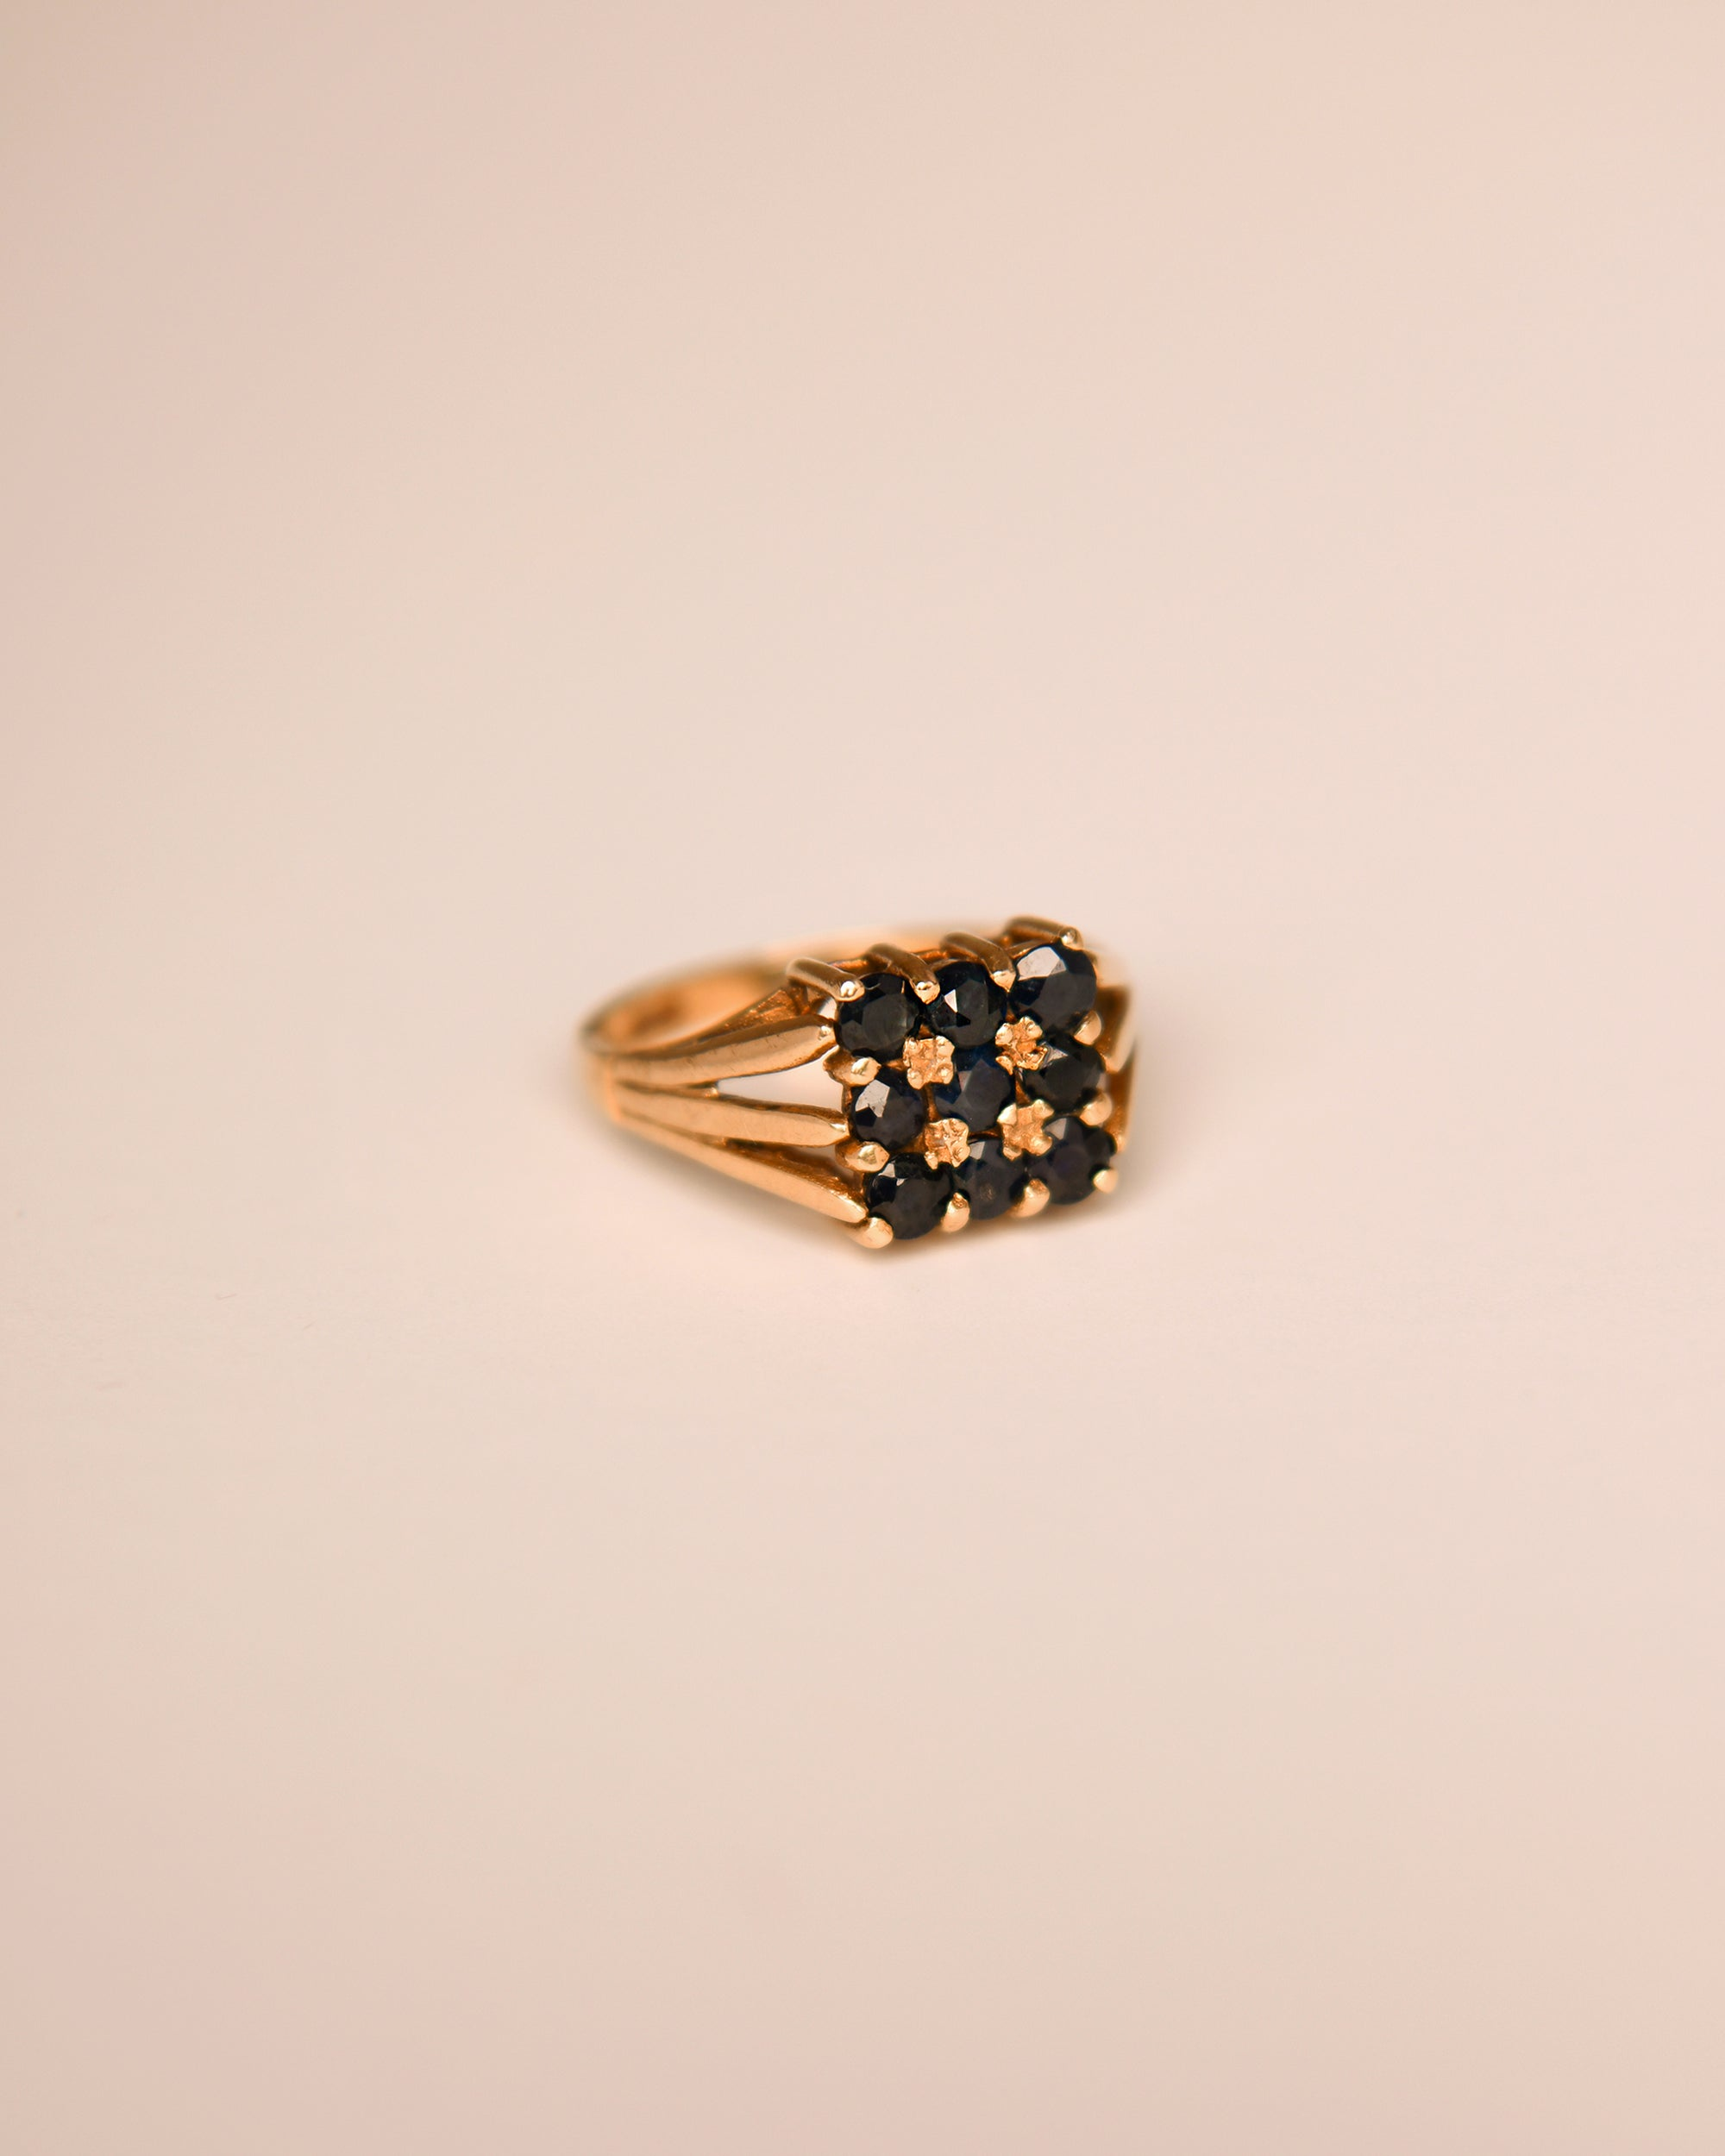 Darla 9ct Gold Vintage Sapphire Ring